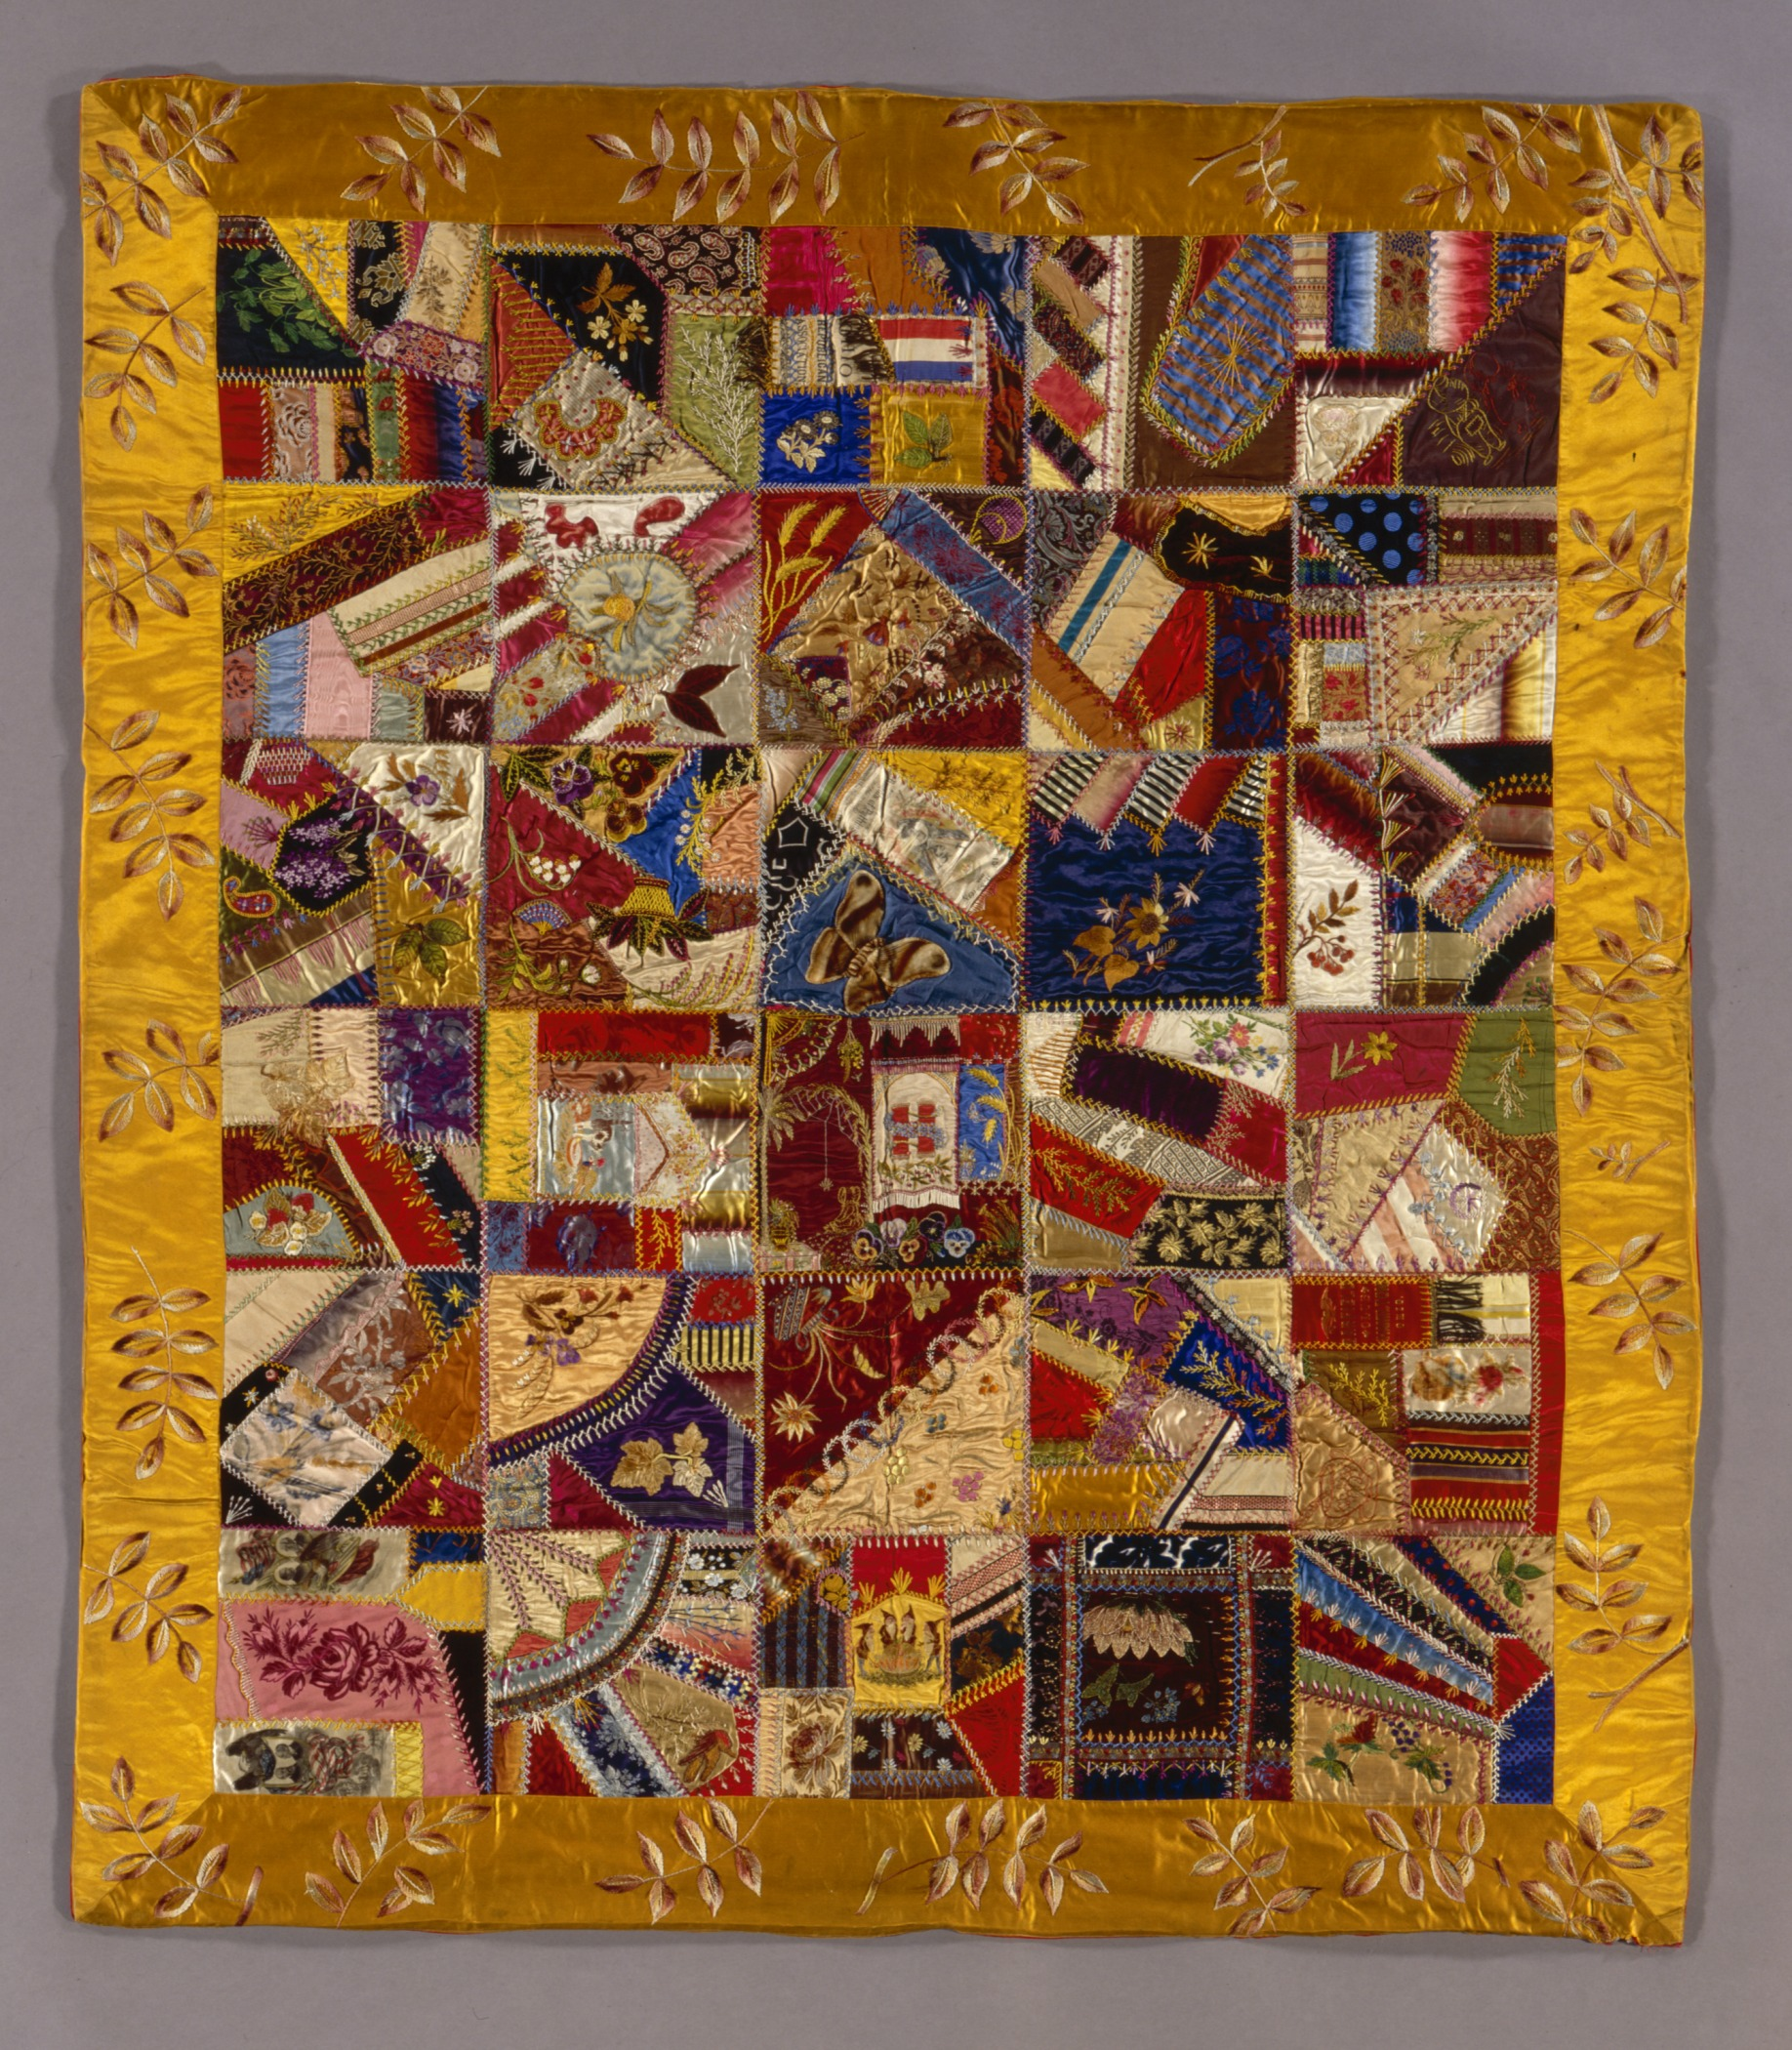 File:Crazy Quilt LACMA M.79.239.1.jpg - Wikimedia Commons : history of crazy quilts - Adamdwight.com